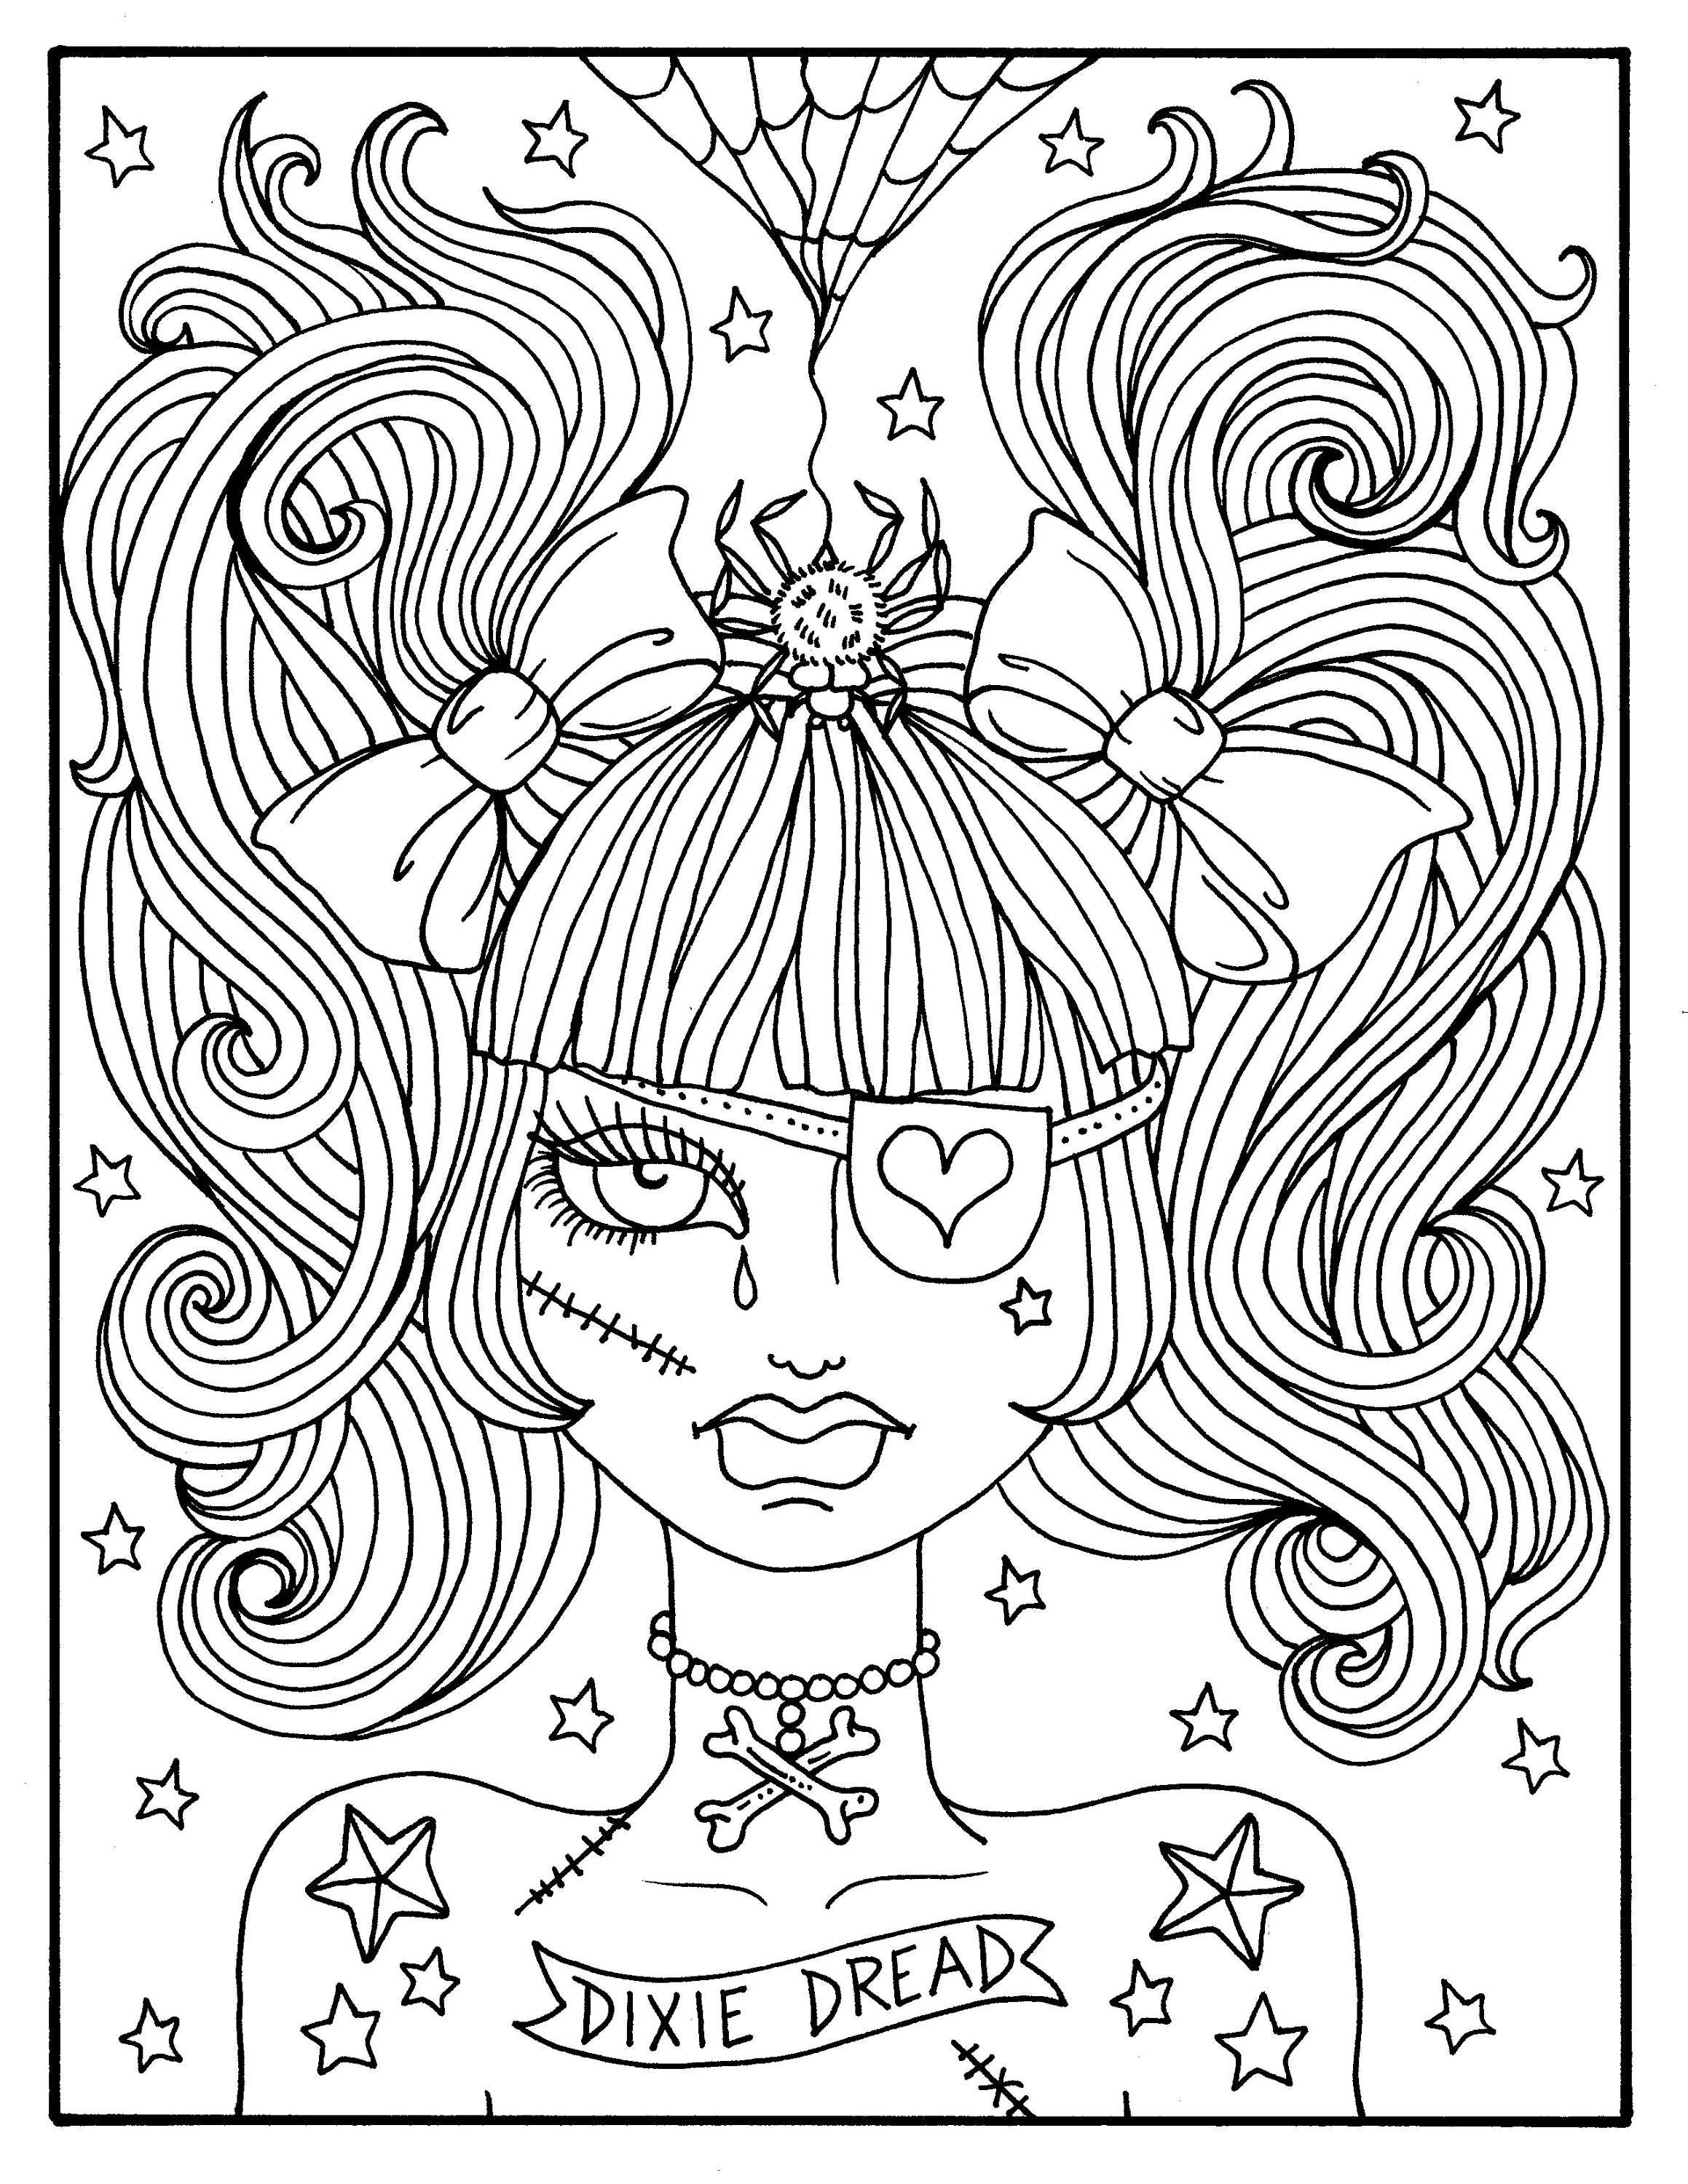 Creepy Coloring Pages  Misfit Girls 5 pages Halloween Misfits Creepy Cute Coloring